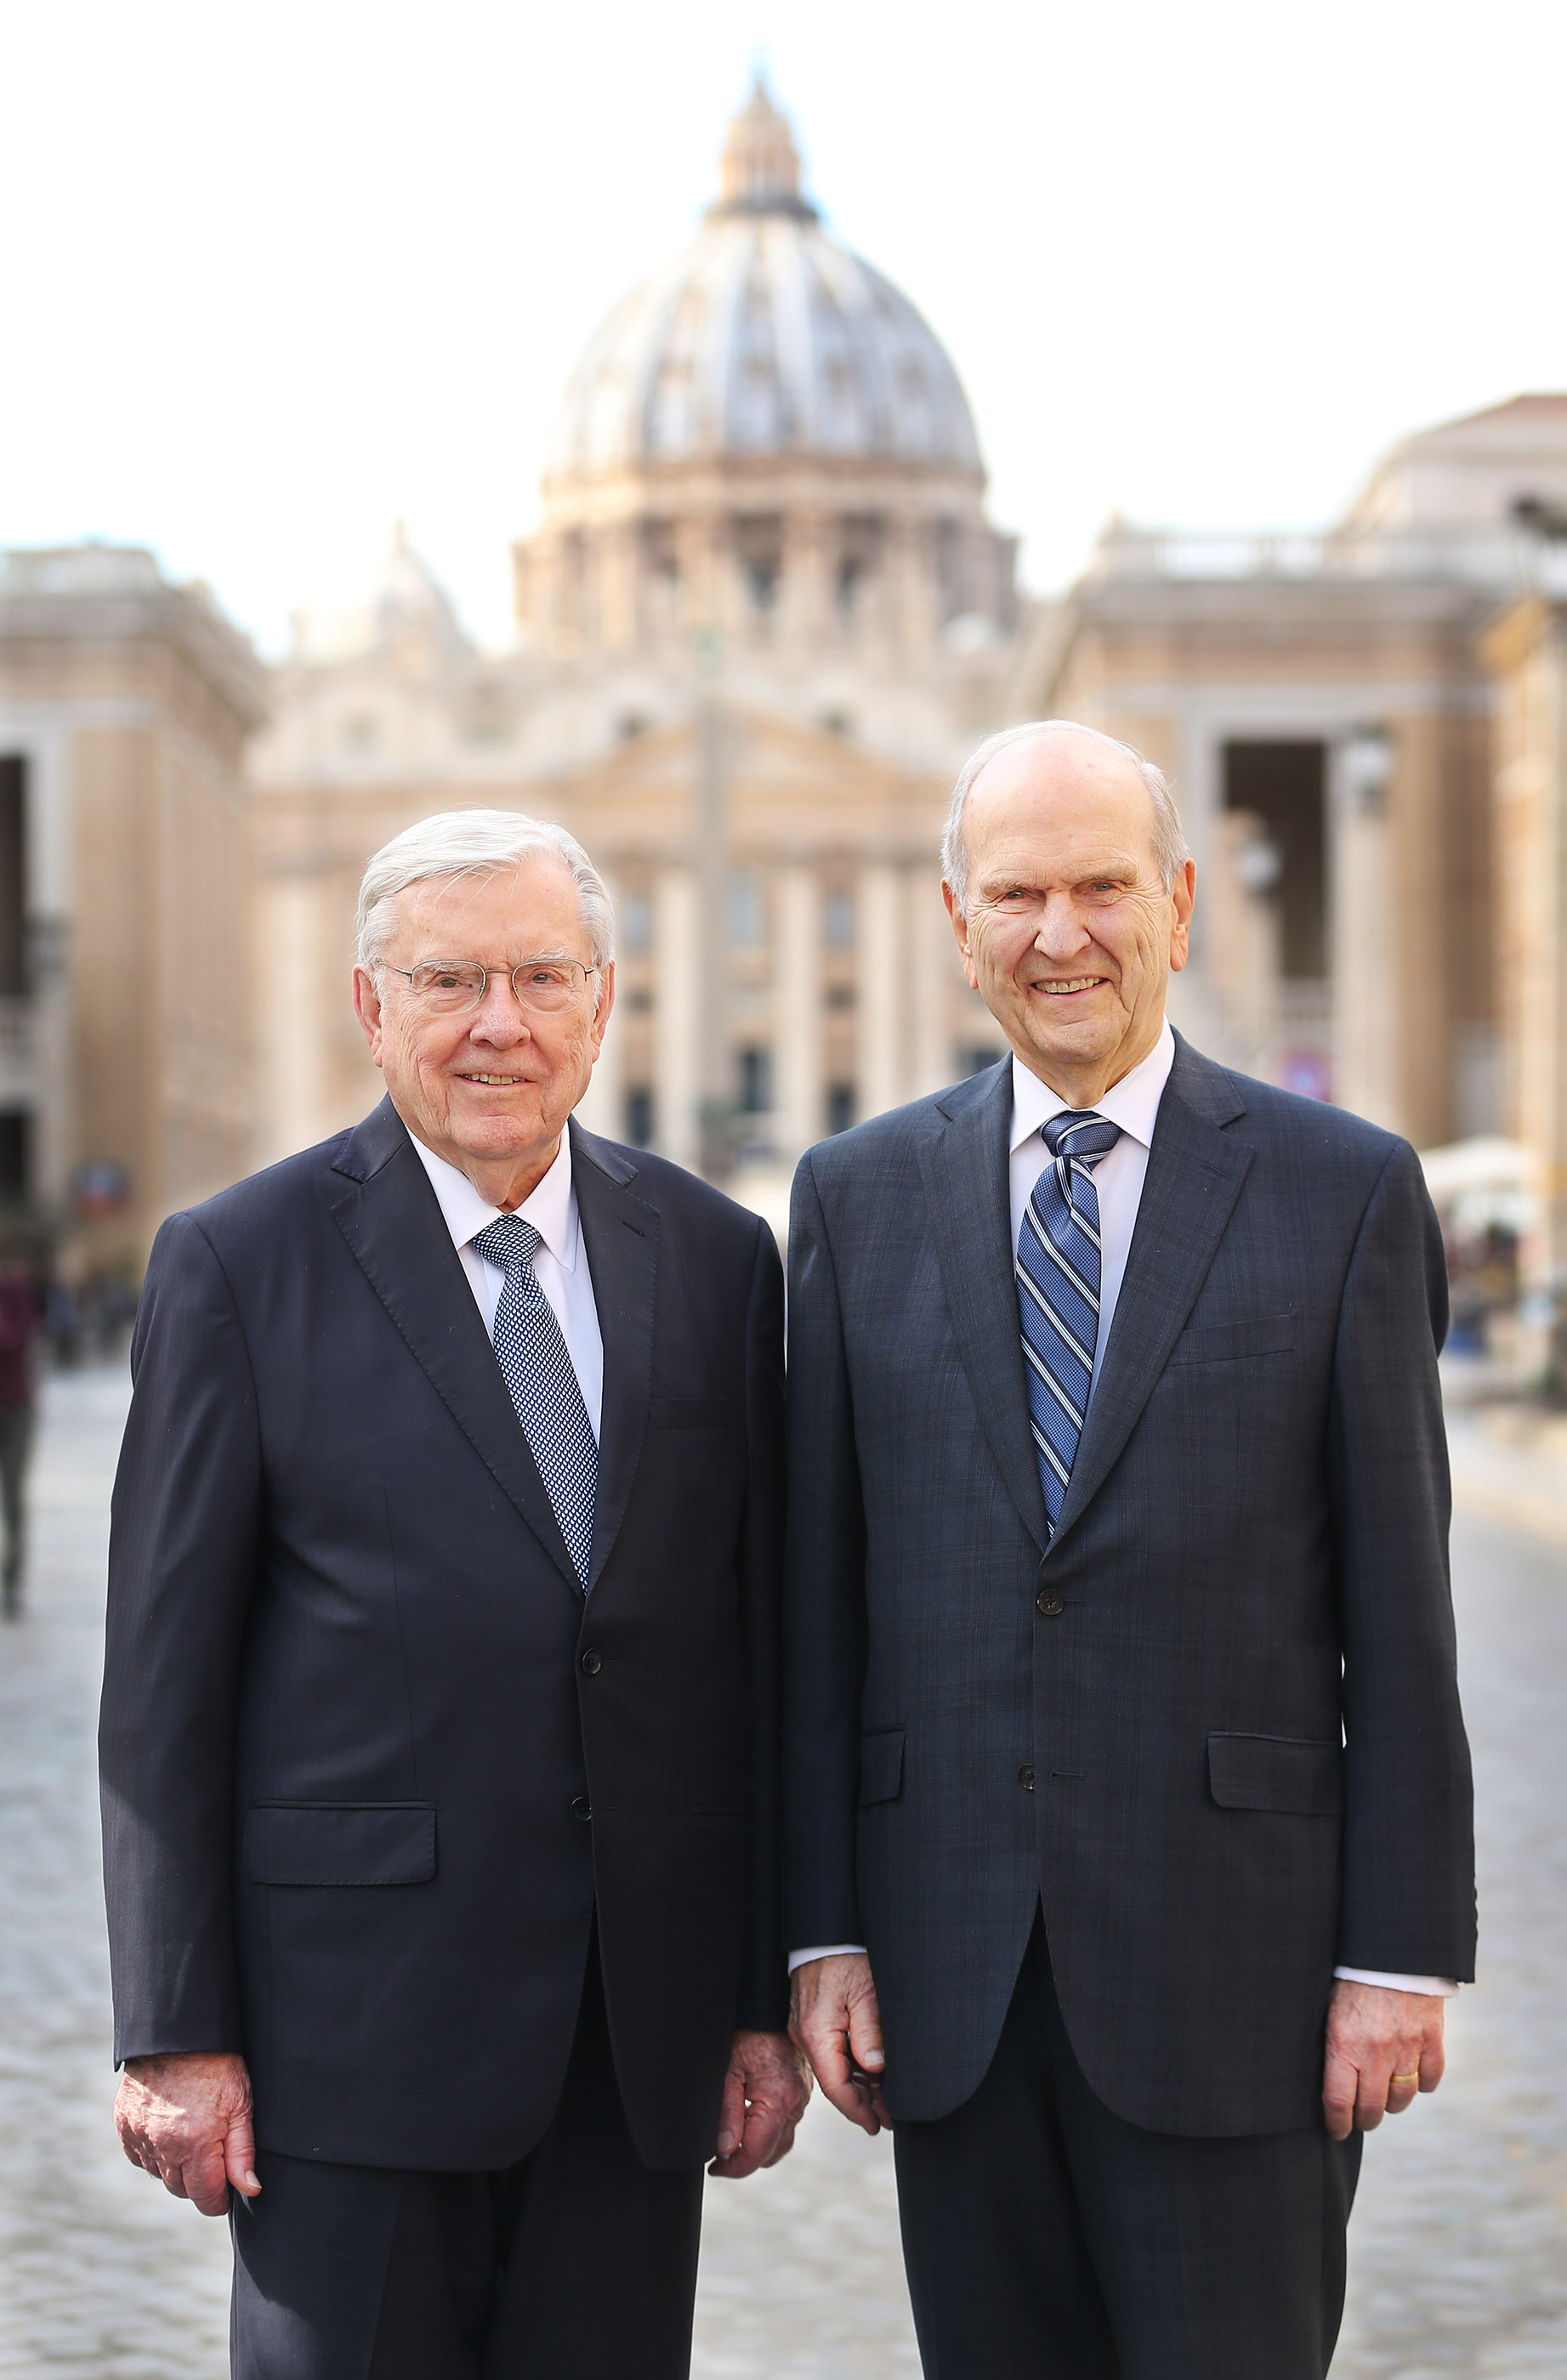 President Russell M. Nelson of The Church of Jesus Christ of Latter-day Saints and President M. Russell Ballard, acting president of the Quorum of the Twelve Apostles, pose near the Vatican in Rome, Italy, on Saturday, March 9, 2019, after meeting with Pope Francis.